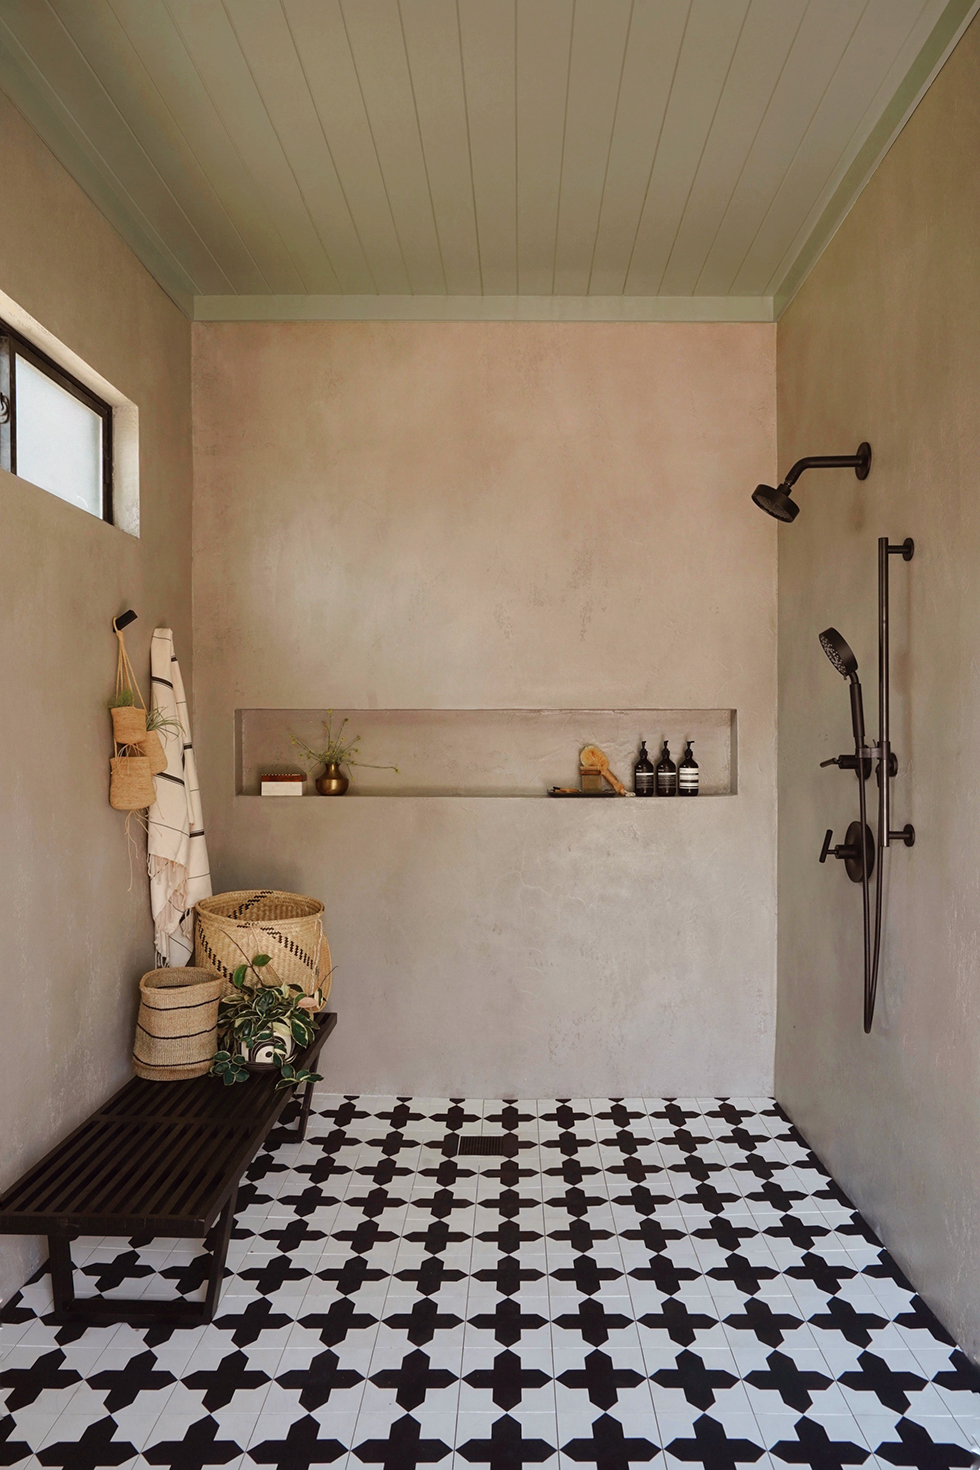 pool house shower with behr color trends 2021 palette on paint color trends 2021 id=69391